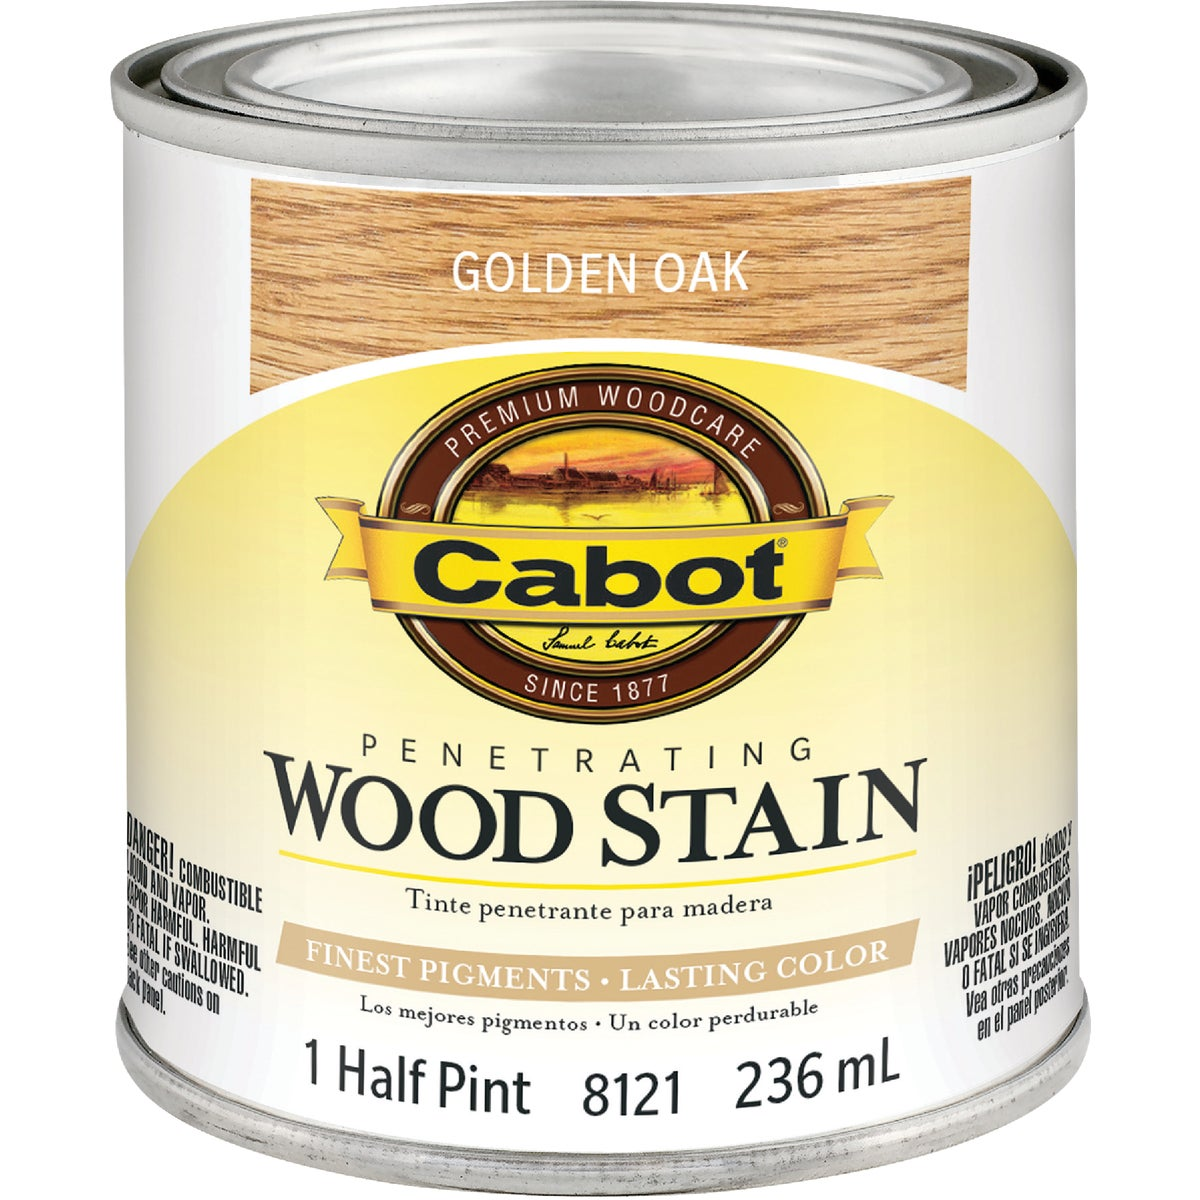 INT GOLDN OAK WOOD STAIN - 144.0008121.003 by Valspar Corp